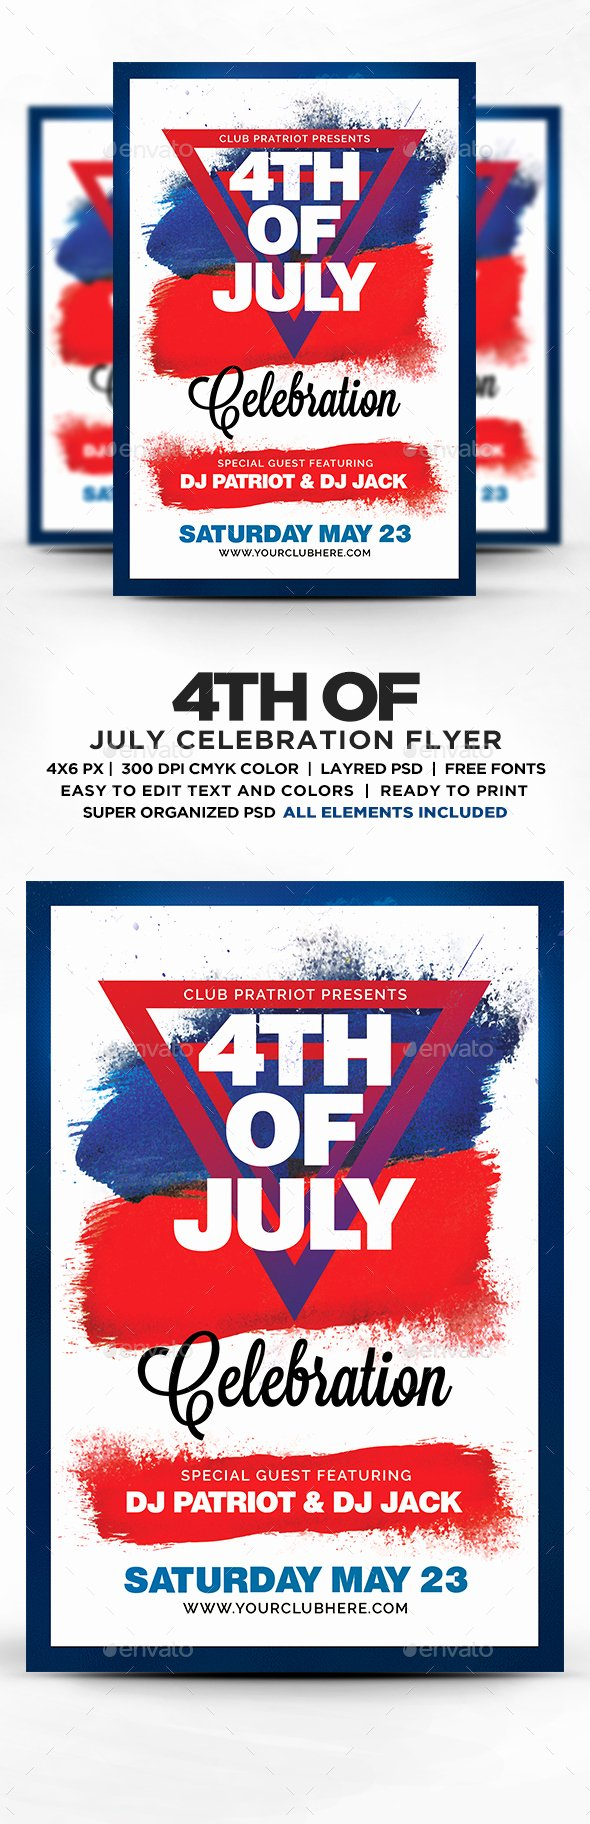 Fourth Of July Flyer Template Elegant 4th July Celebration Flyer Template Psd Flyers Print